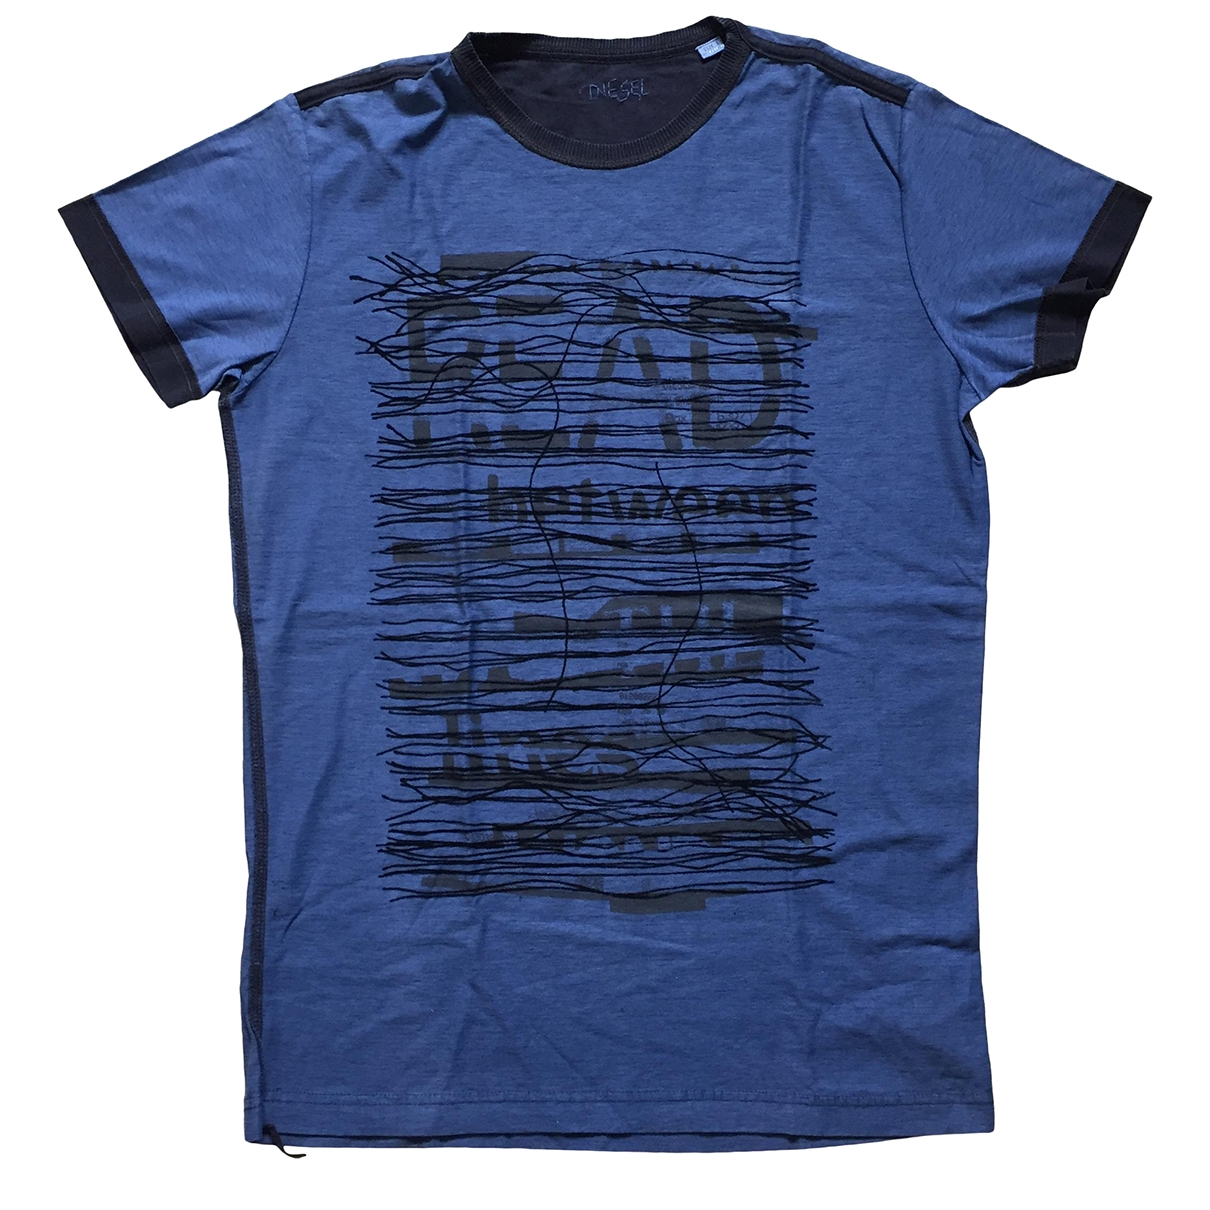 Diesel \N Blue Cotton T-shirts for Men L International